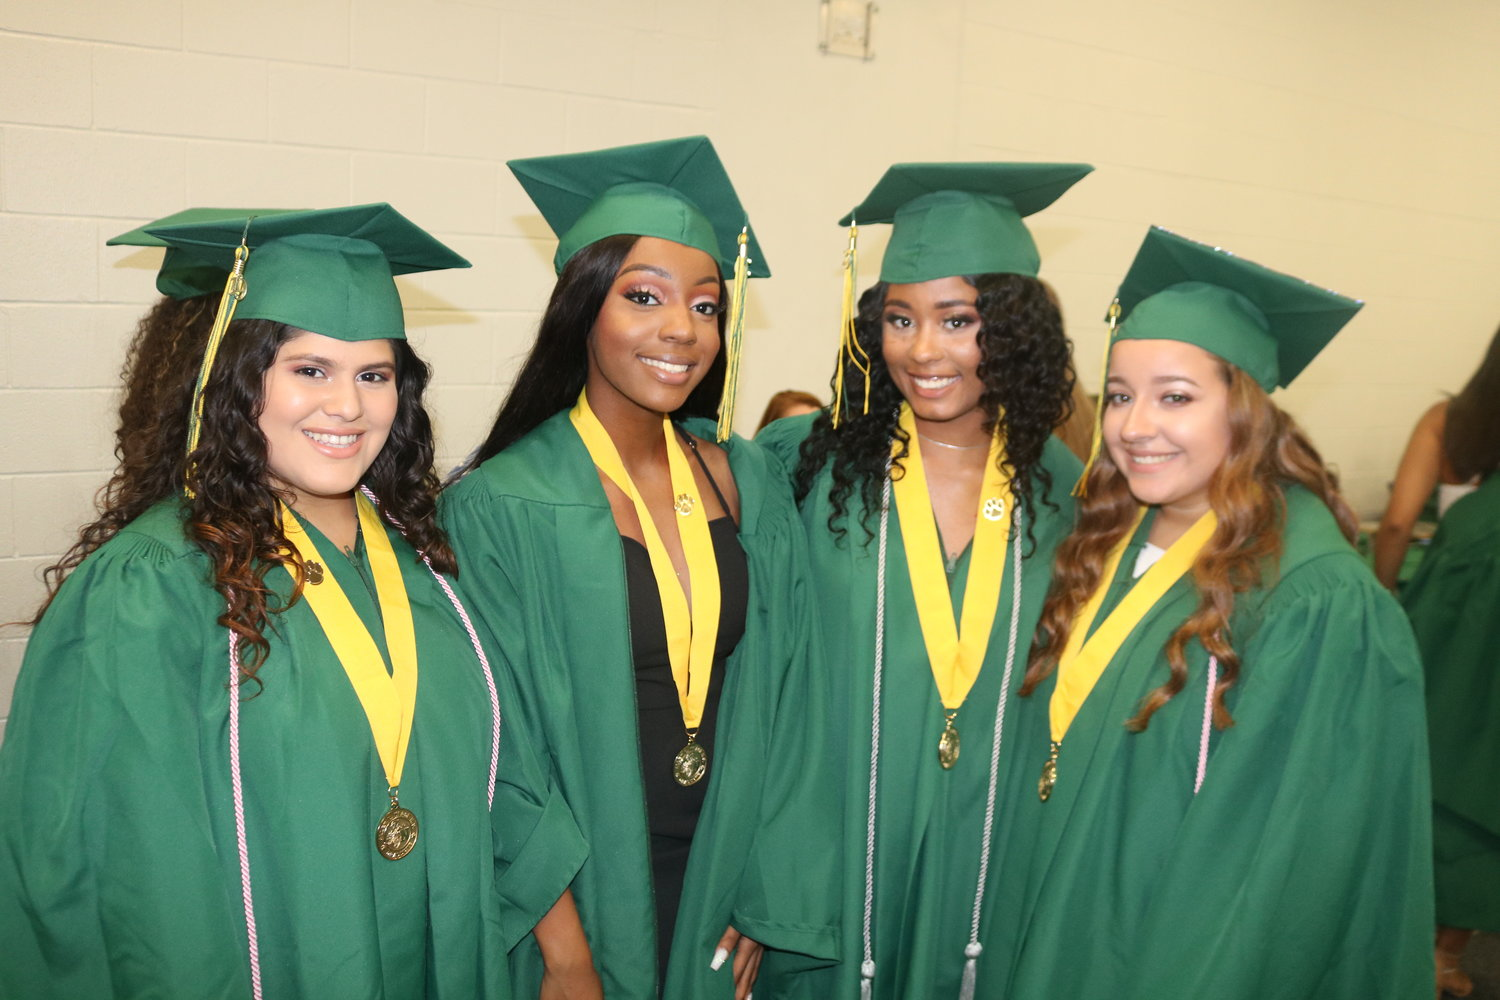 Veronica Lopez, Shakeria Turner, Alexus Wilson and Carrie Rivera